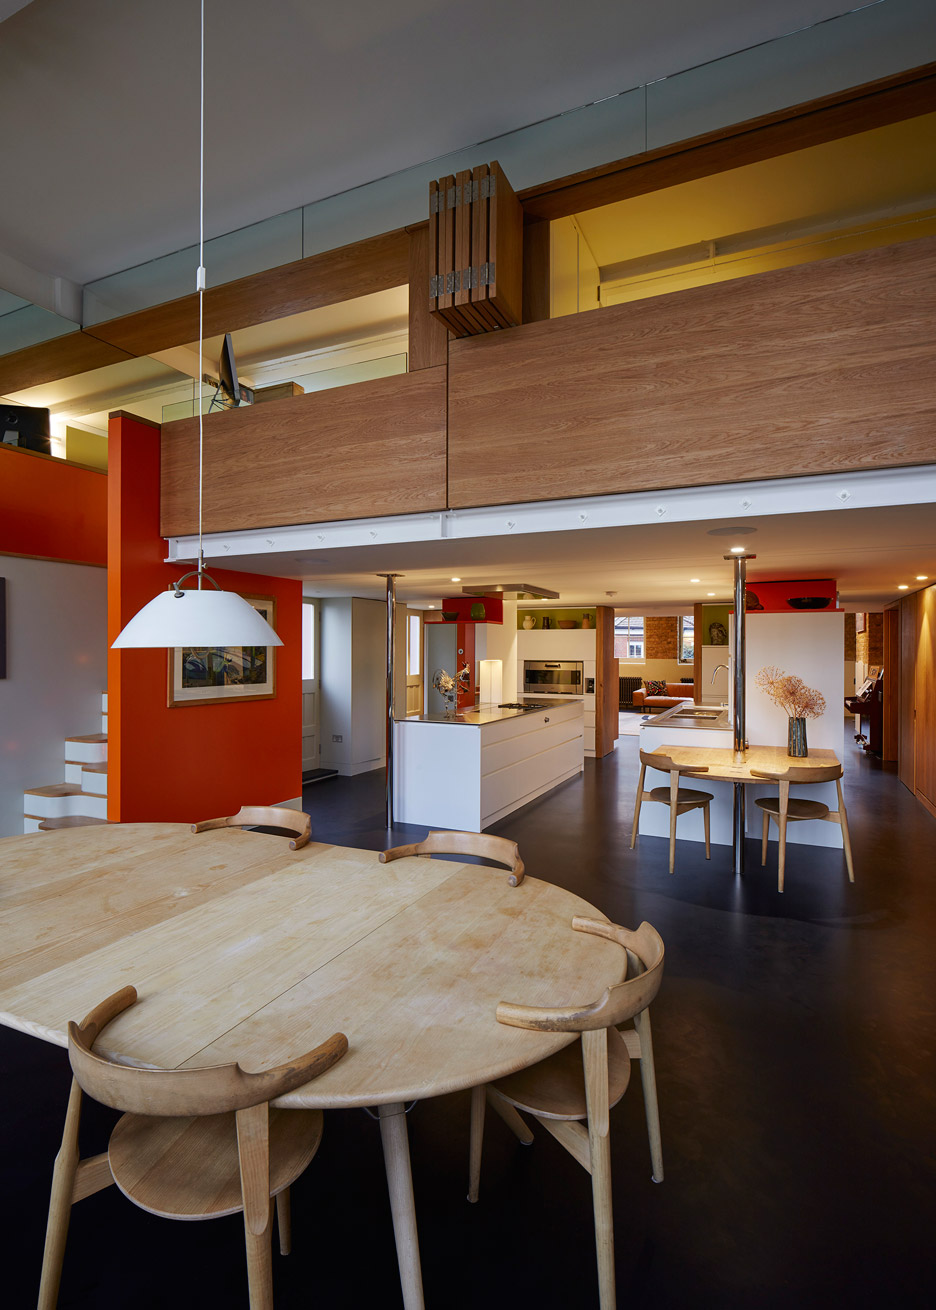 the-lycee-knox-bhavan-architects-interior-renovation-residential-london-uk-dennis-gilbert_dezeen_936_1